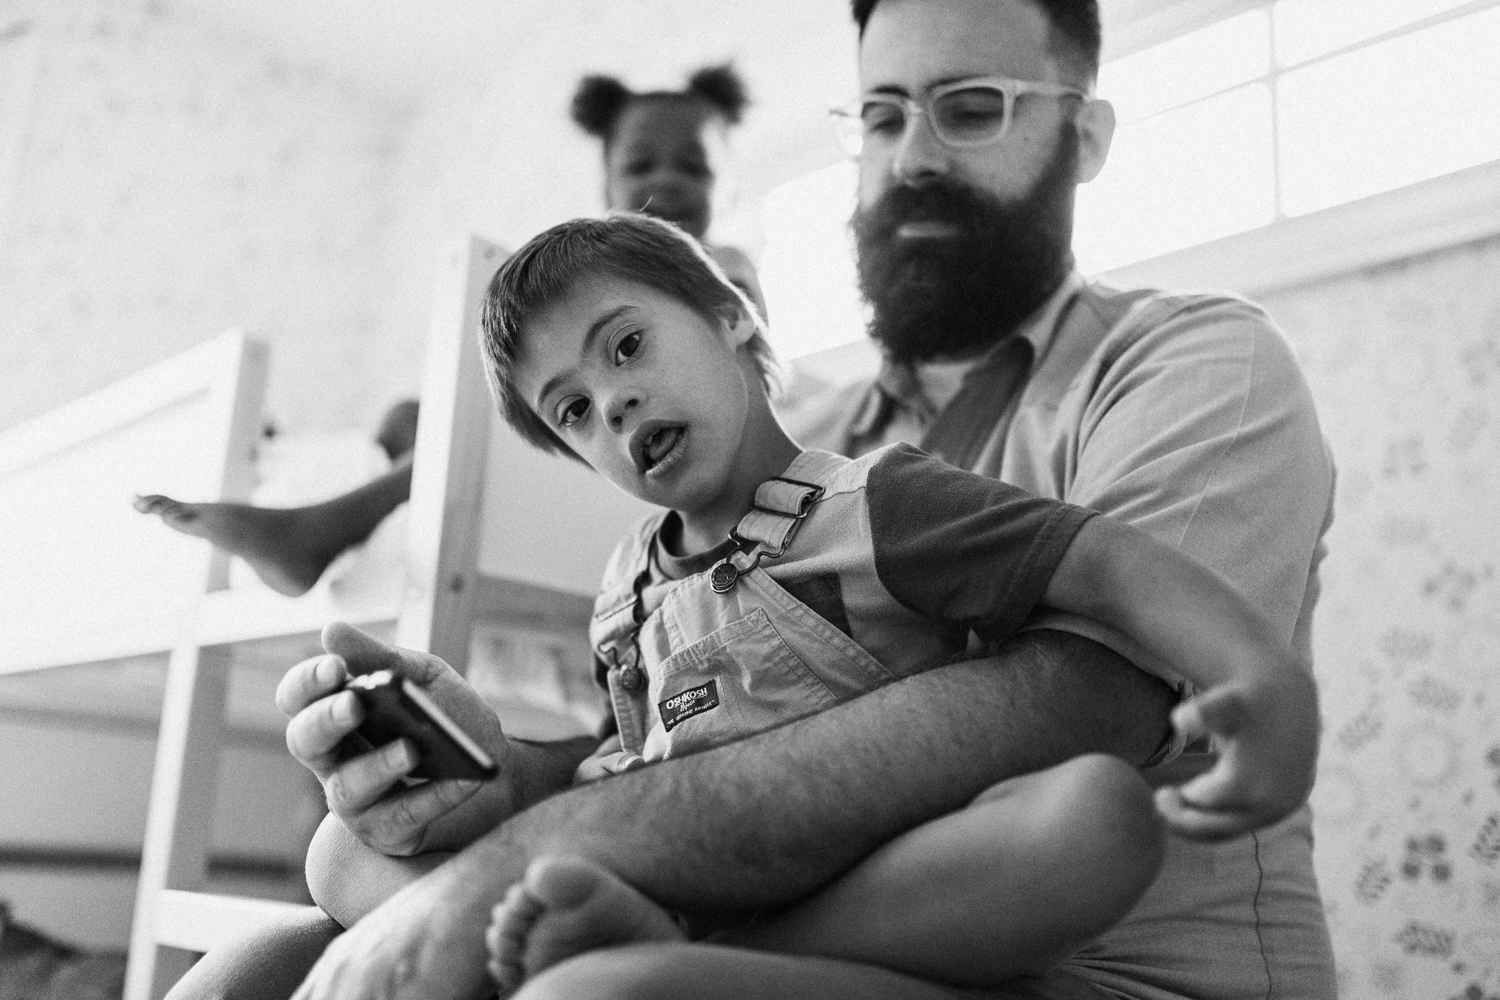 candid-black-and-white-photo-of-son-sitting-on-fathers-lap-during-in-home-session-with-jen-fairchild-in-salt-lake-city-utah